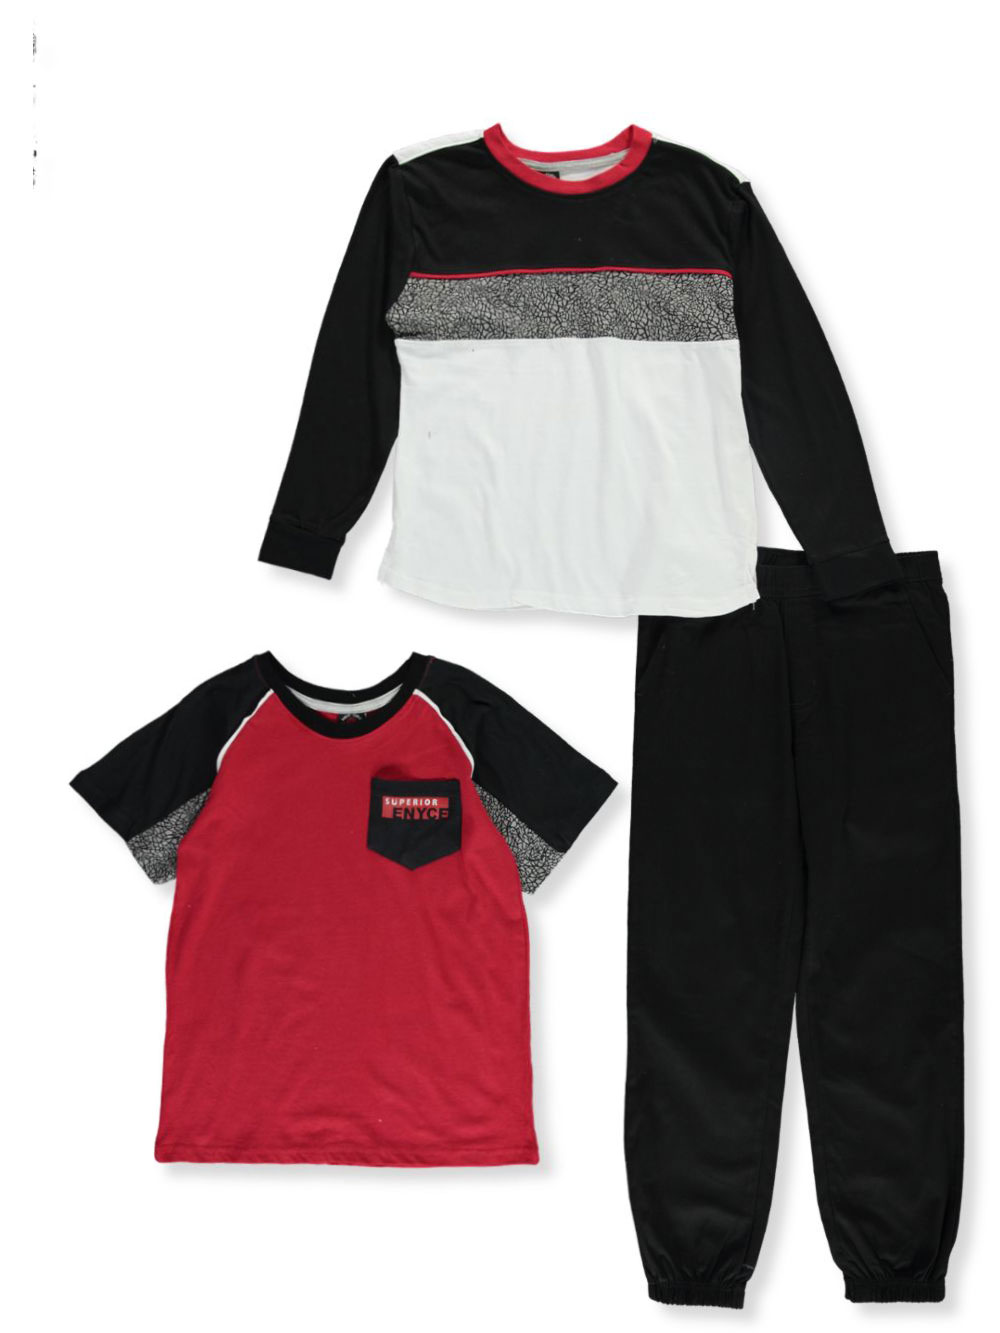 Enyce Boys/' 3-Piece Pants Set Outfit